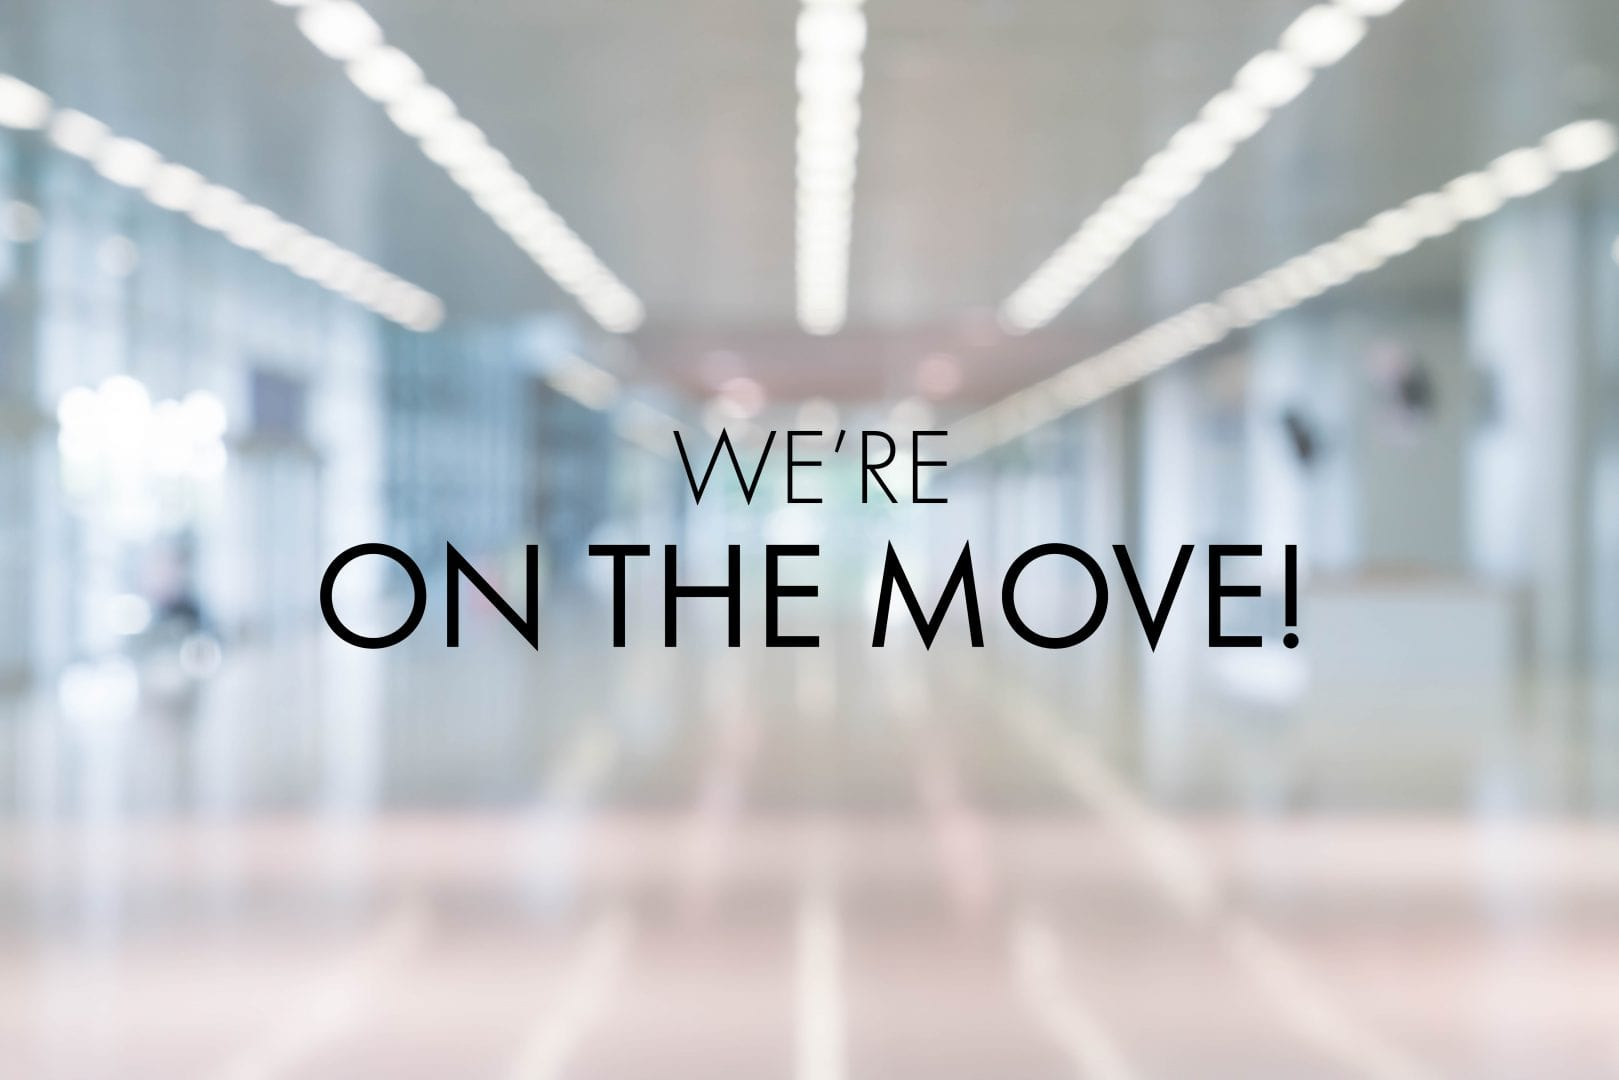 Our Corporate Headquarters are Moving